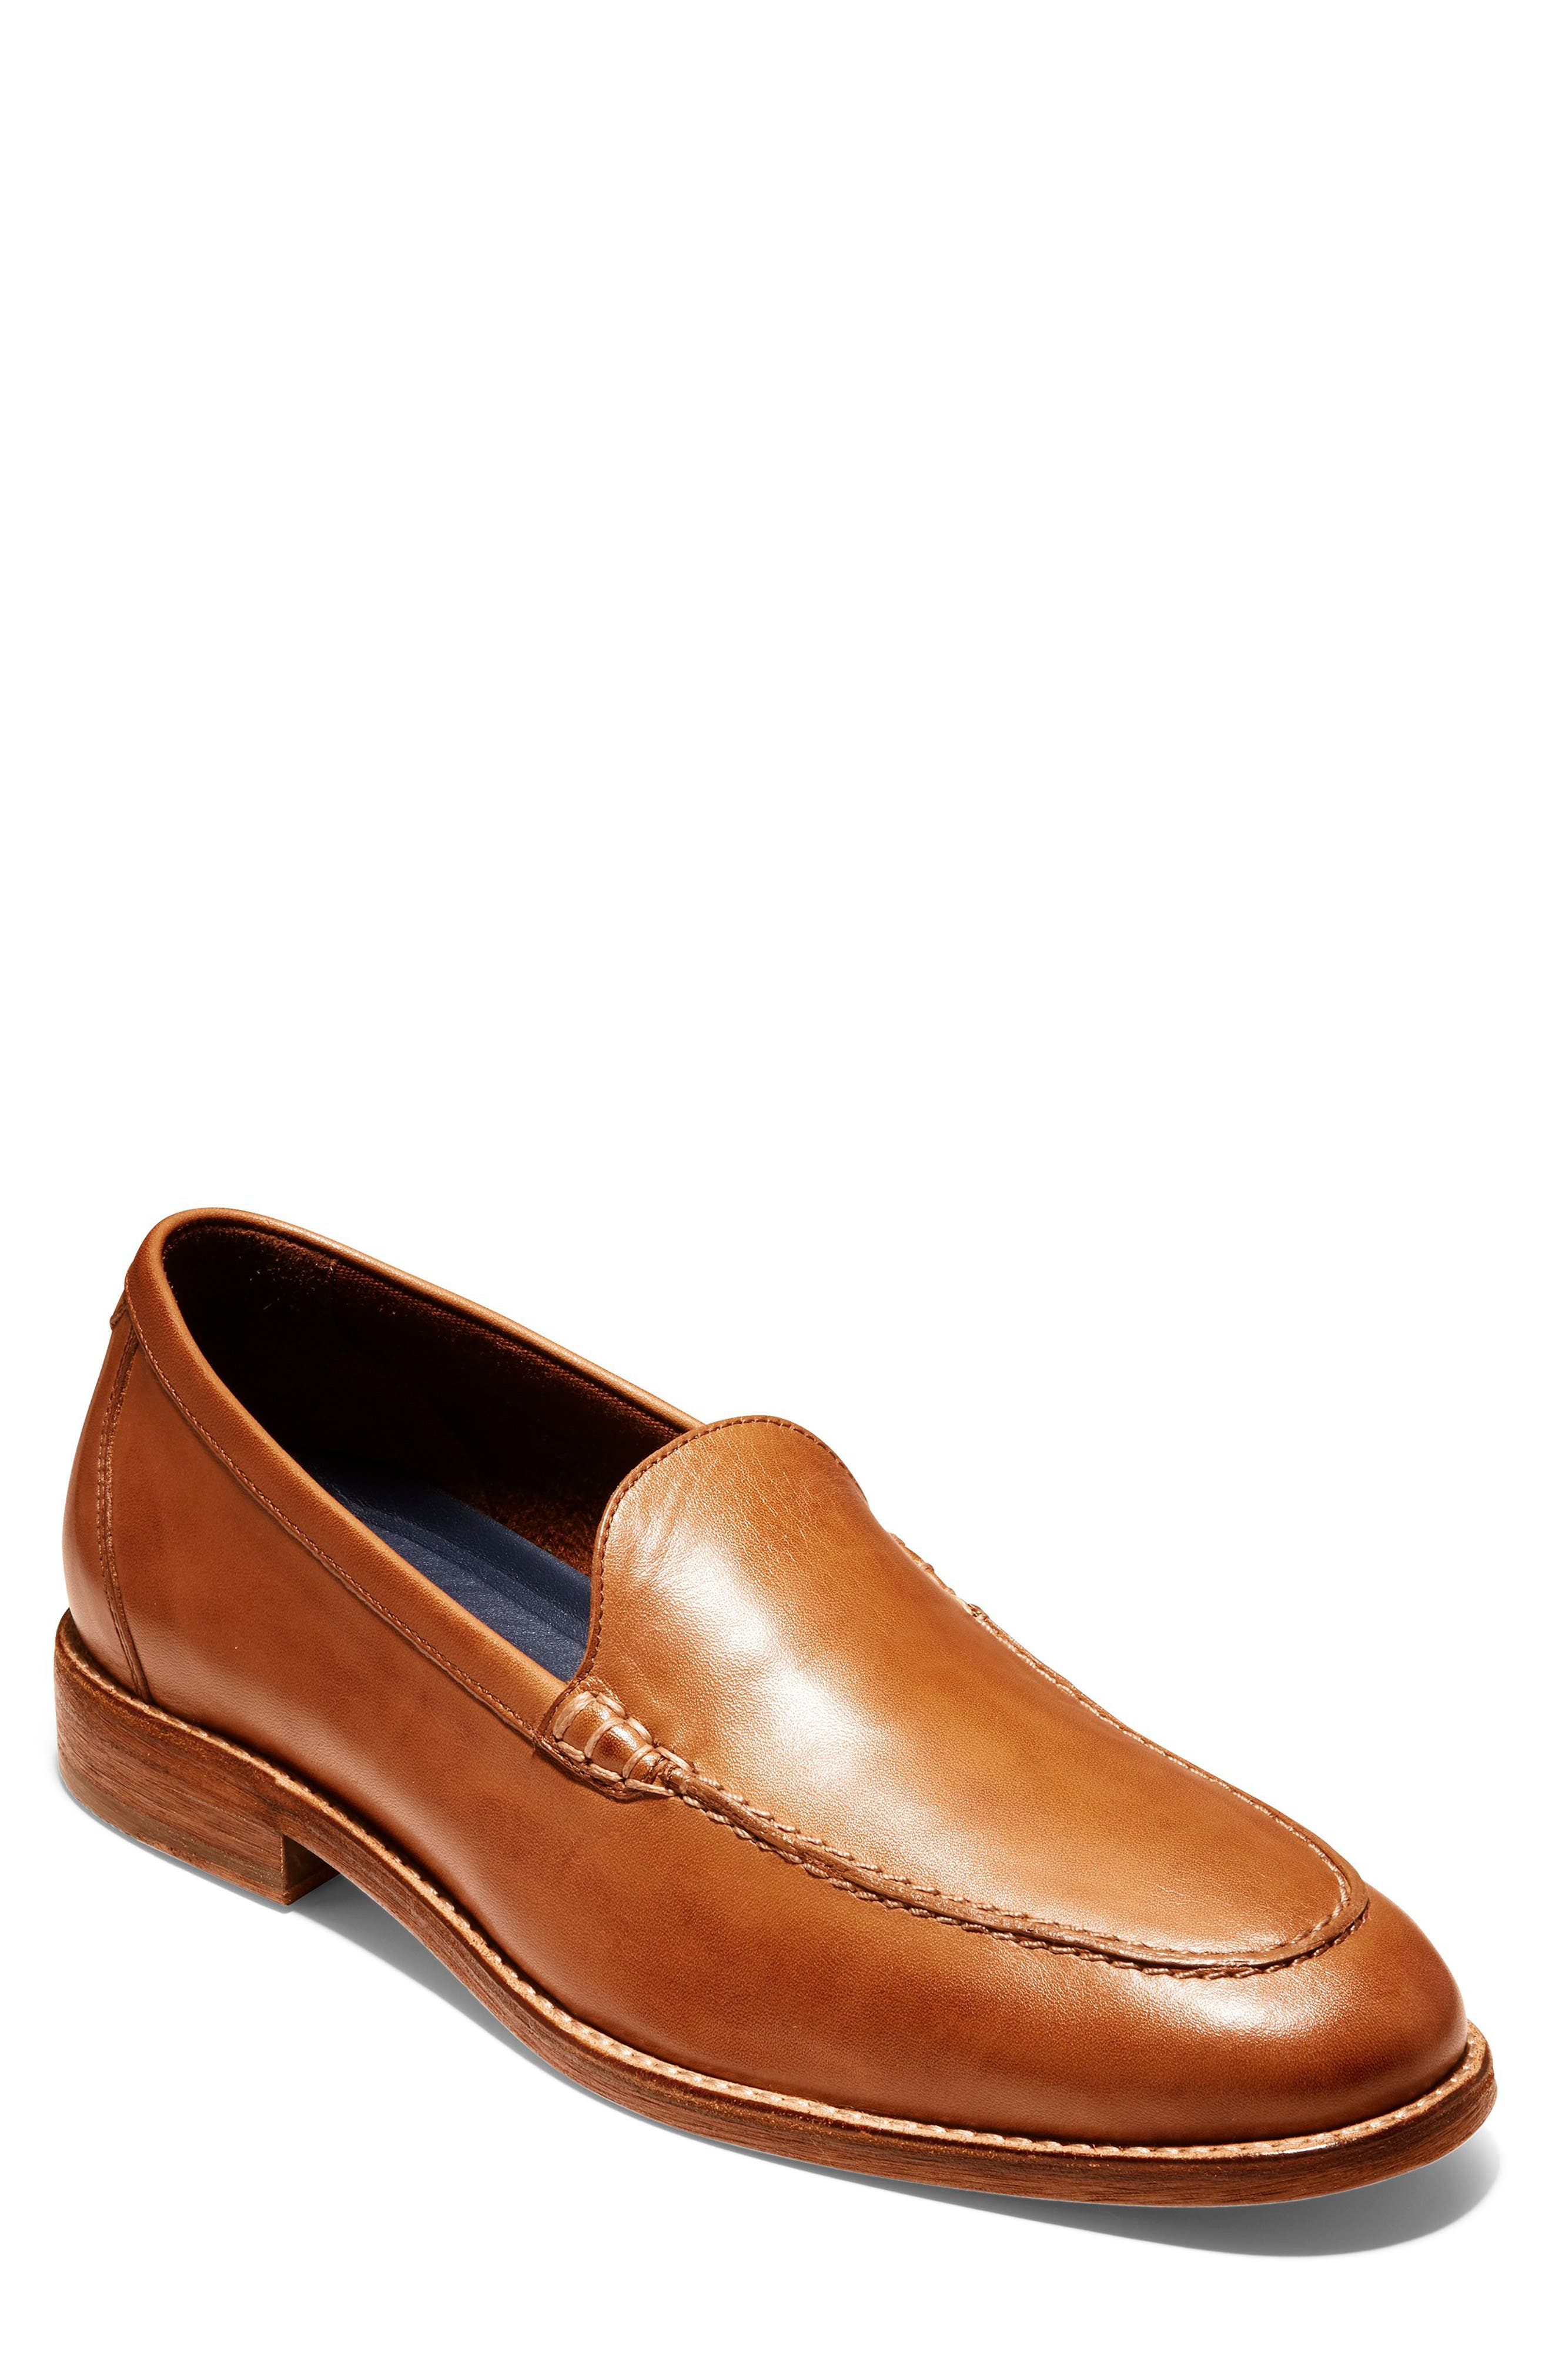 COLE HAAN, Feathercraft Grand Venetian Loafer, Main thumbnail 1, color, BRITISH TAN LEATHER